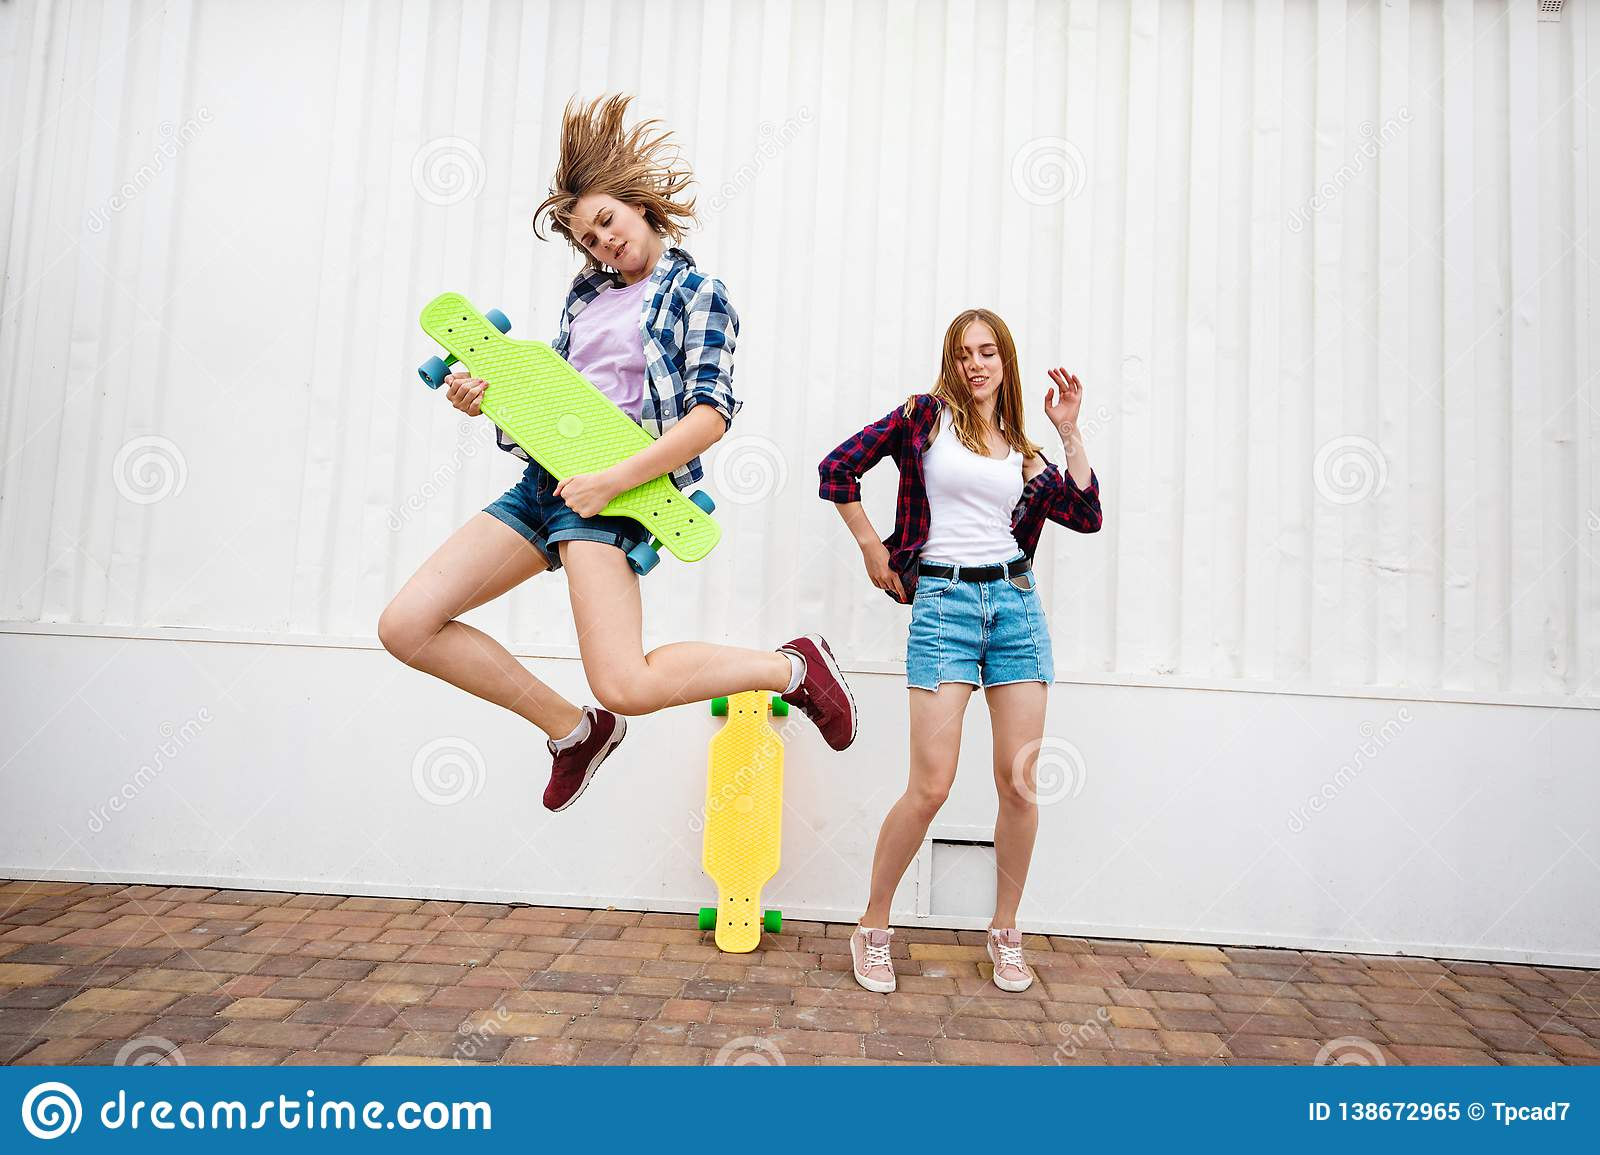 Two pretty blond girls wearing checkered shirts and denim shorts are jumping and dancing with bright longboards. Young